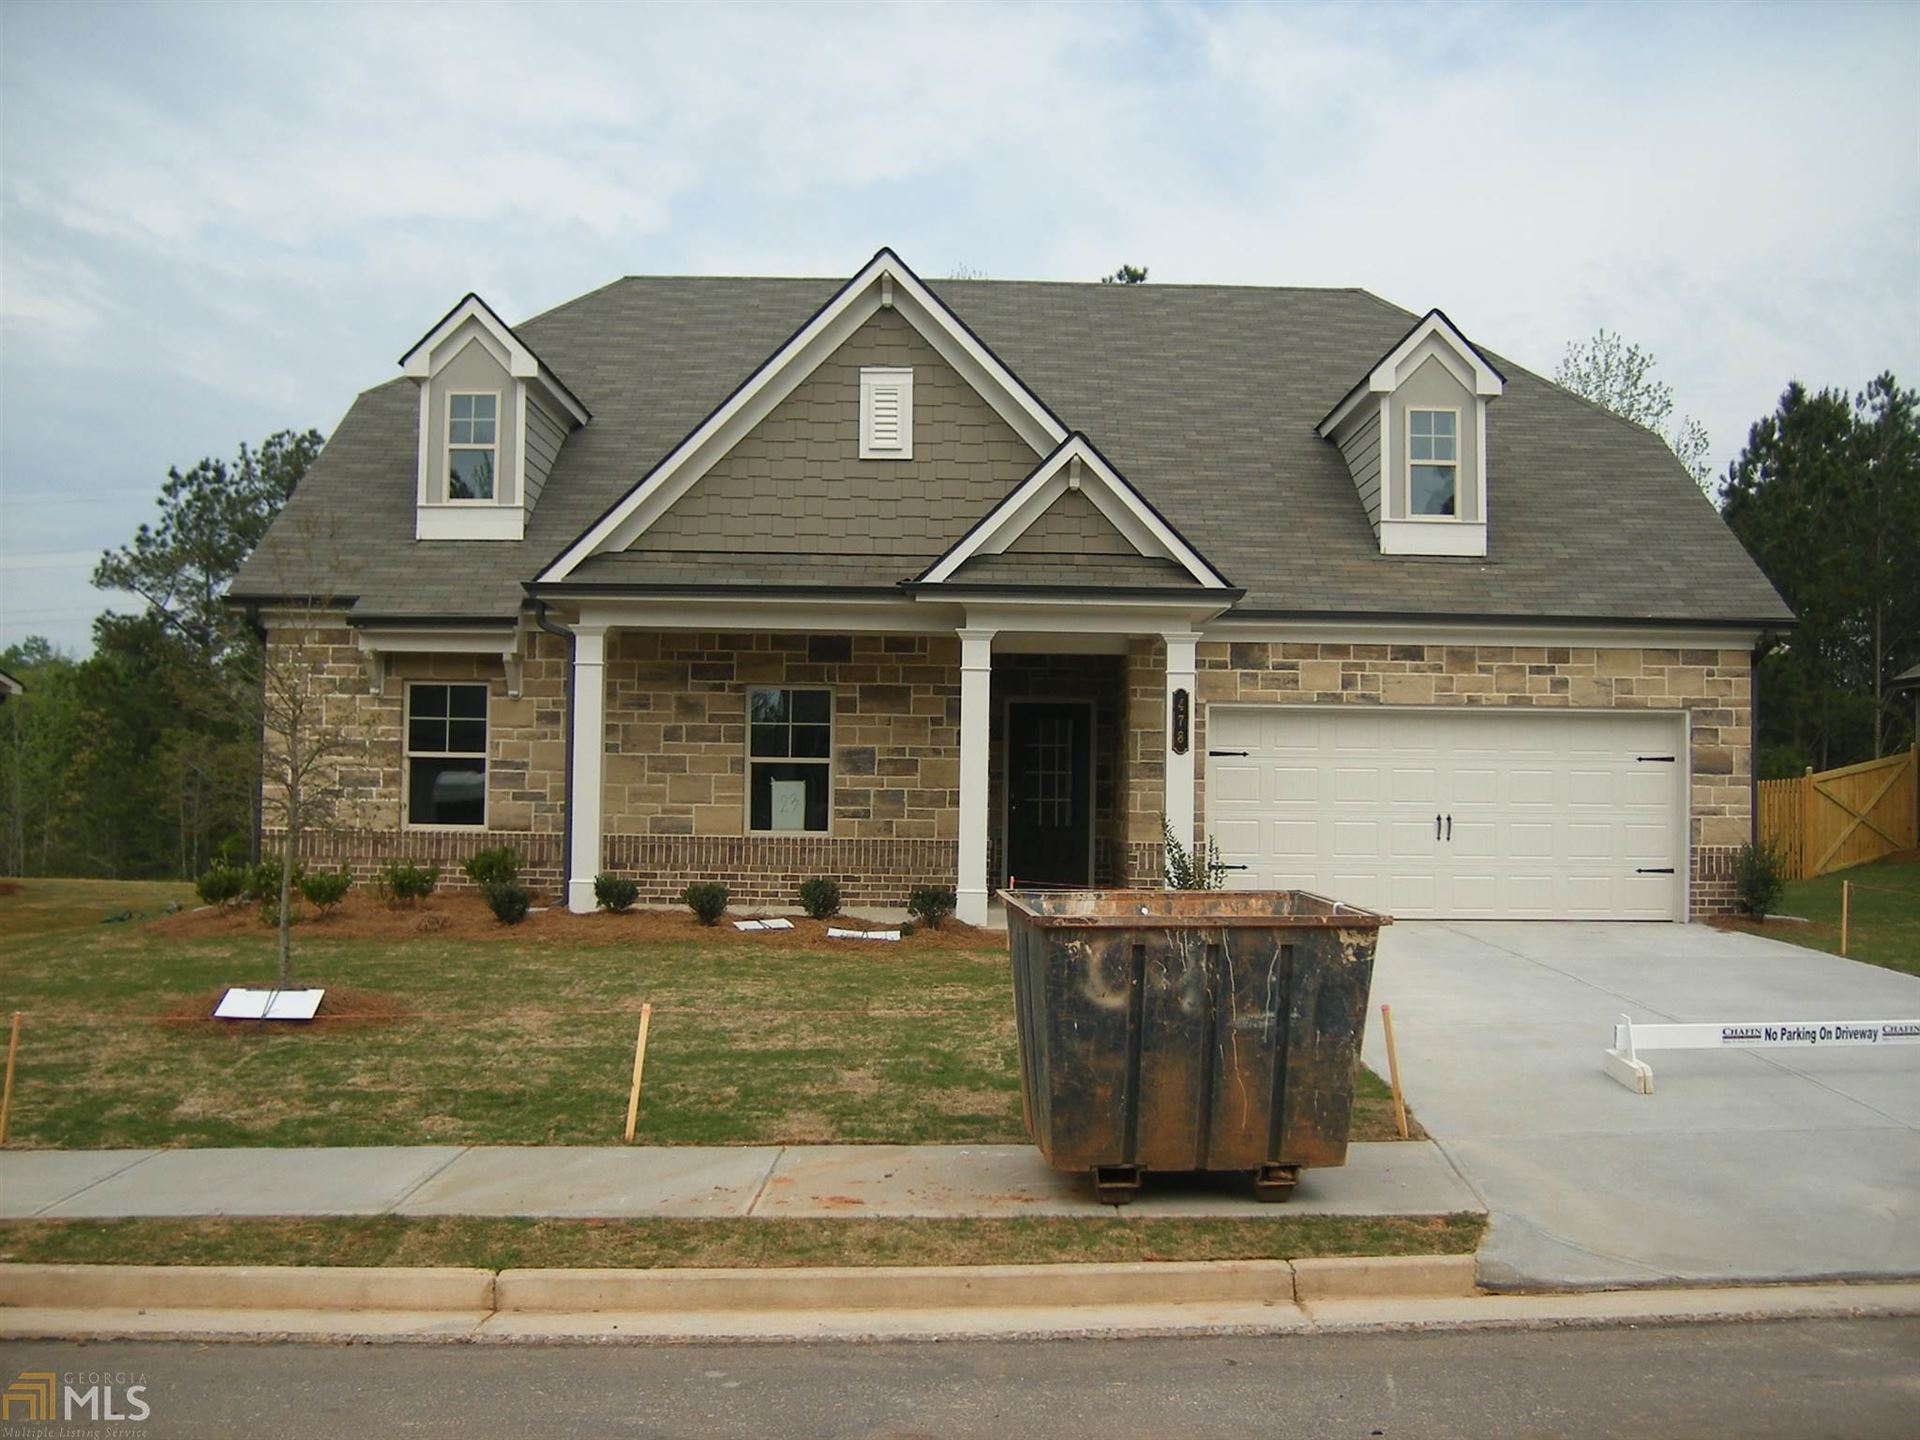 478 Gadwall Cir, Jefferson, GA 30549 - #: 8706230